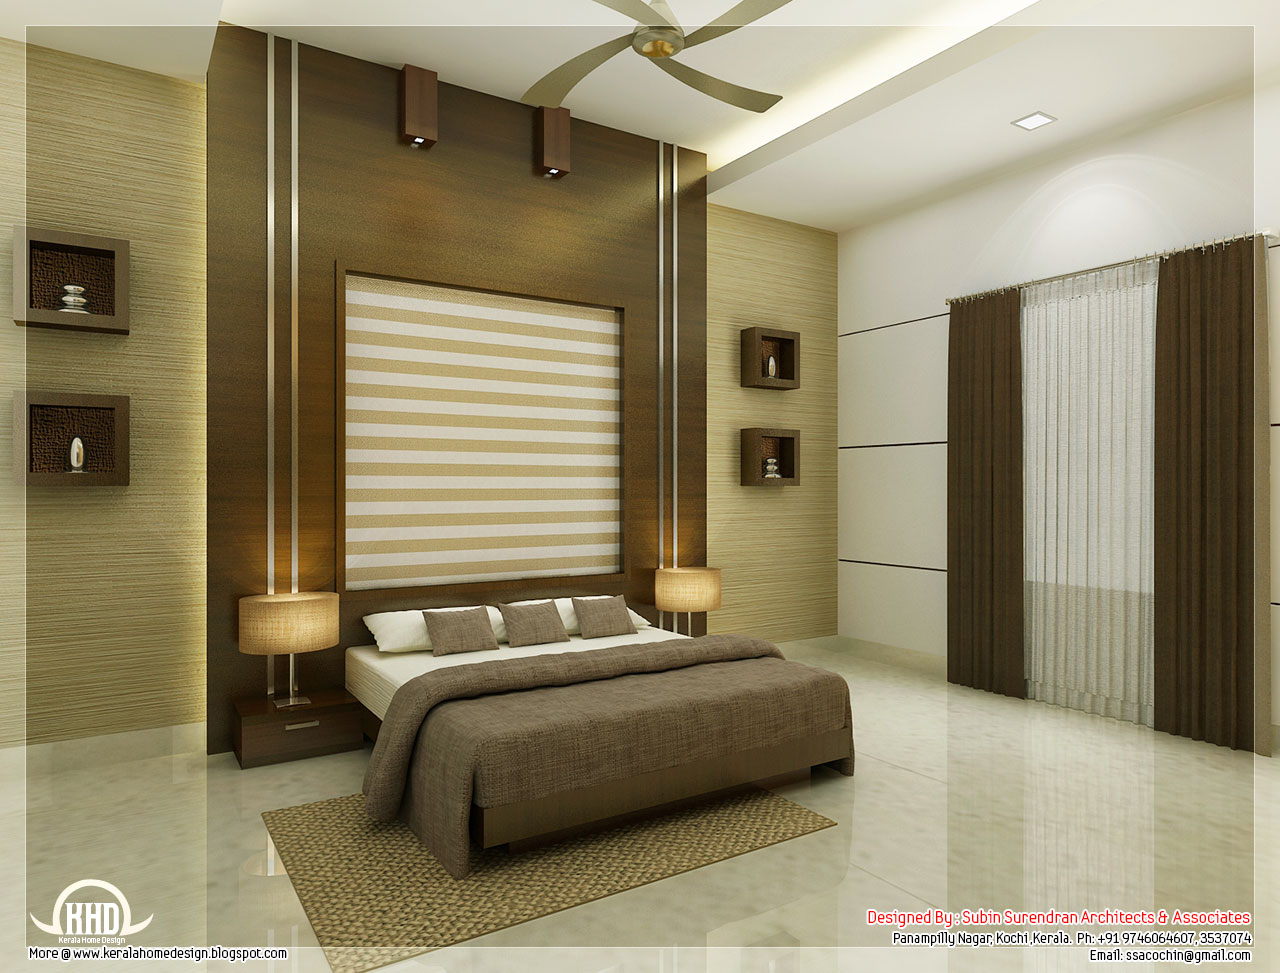 Beautiful bedroom interior designs kerala home design for Home design ideas pictures